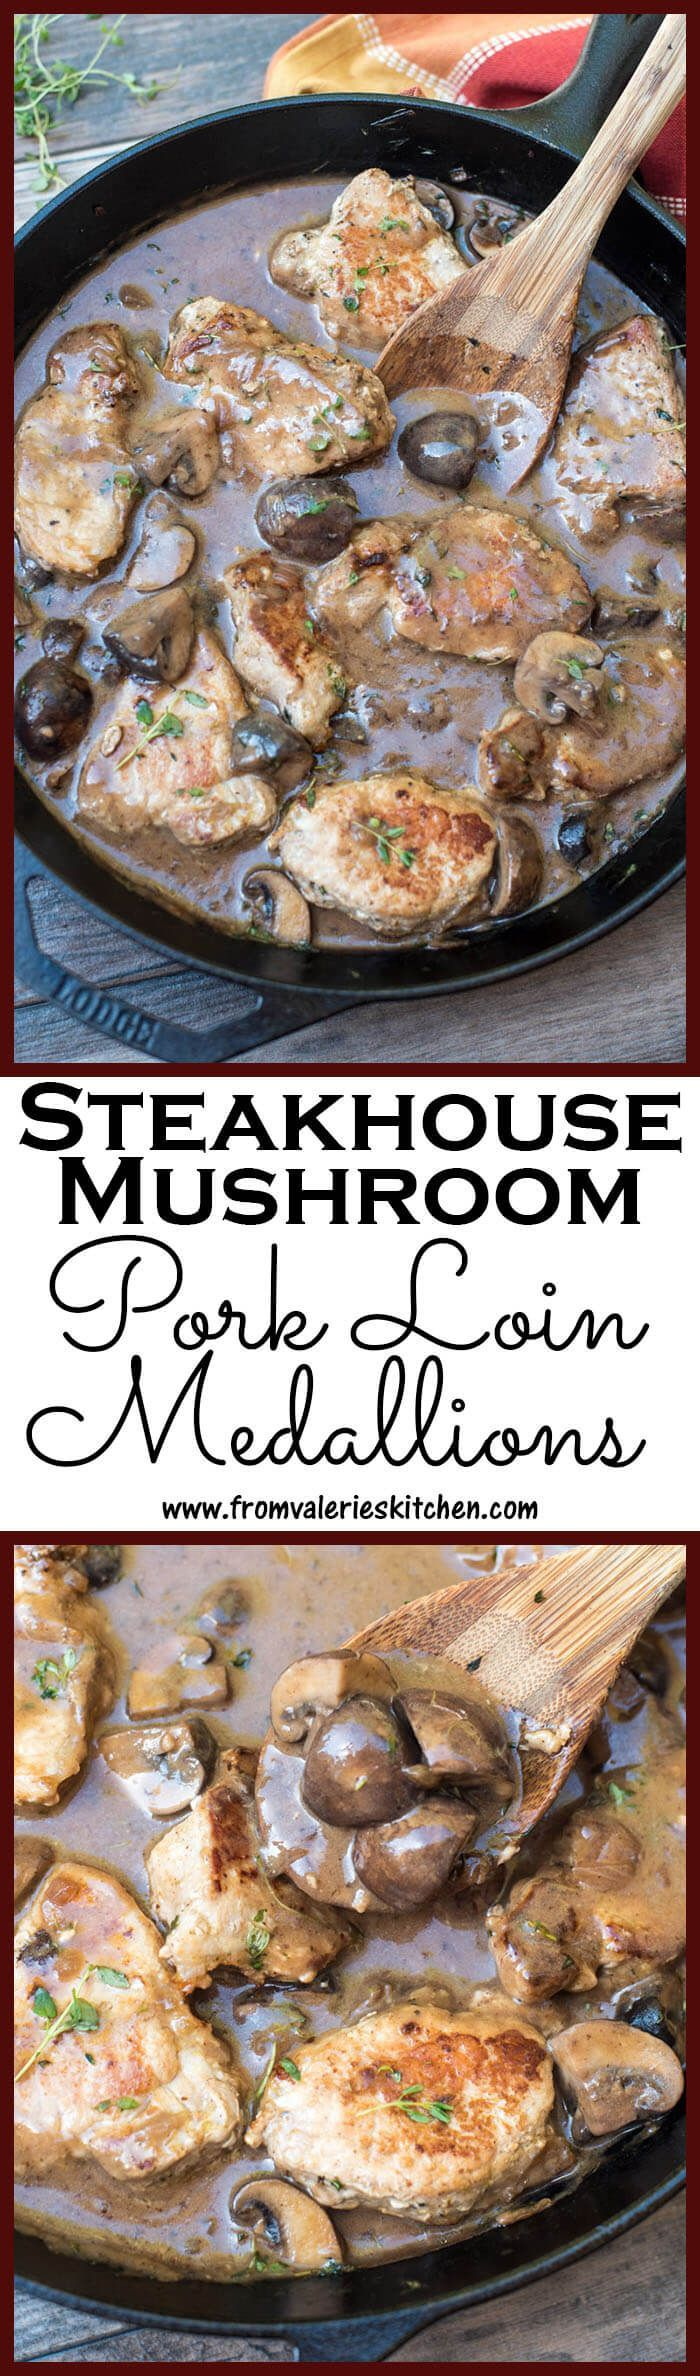 Steakhouse Mushroom Pork Loin Medallions smothered in a creamy sauce with steakhouse style mushrooms cooked in red wine, garlic, and fresh thyme.